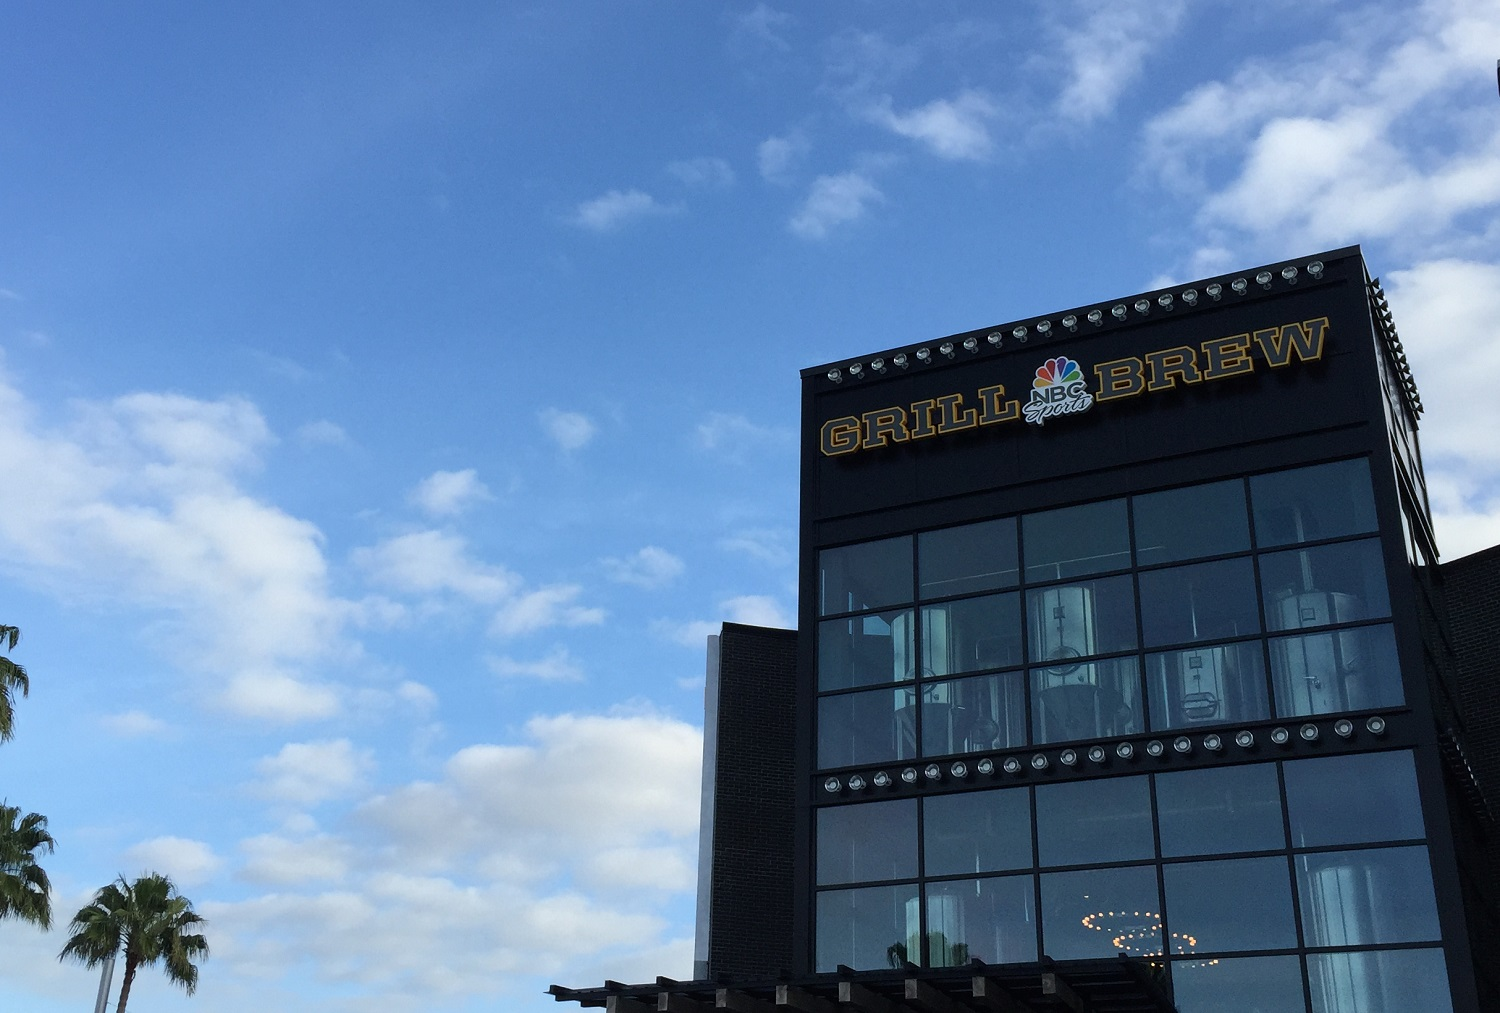 NBC Sports Grill and Brew Sign